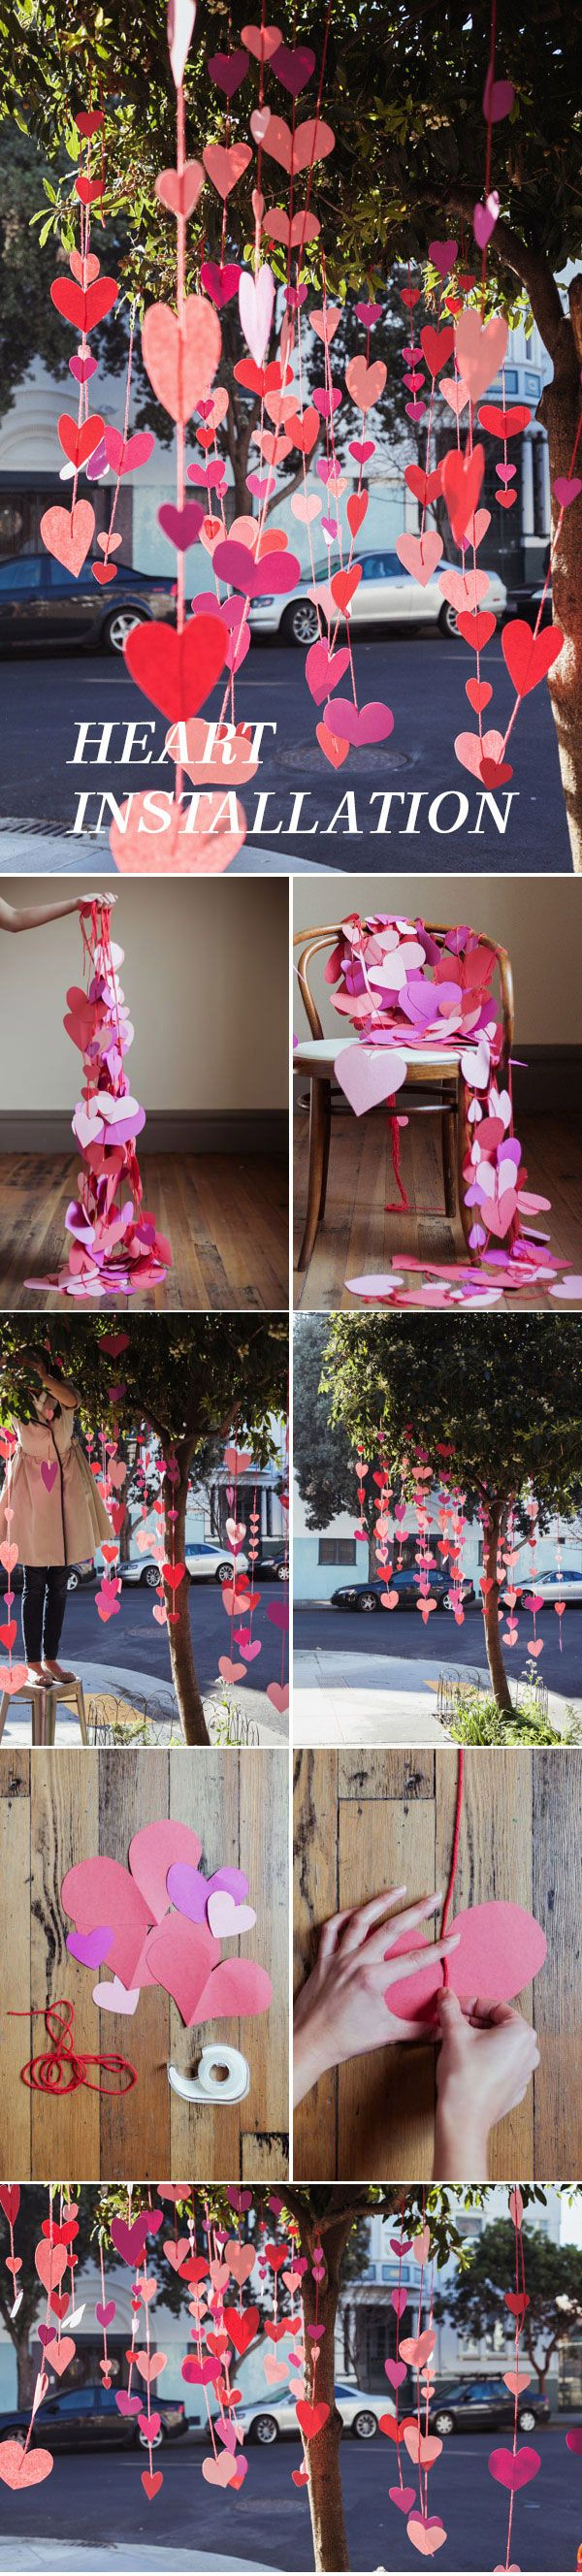 Heart Installation Idea For Valentine's Day